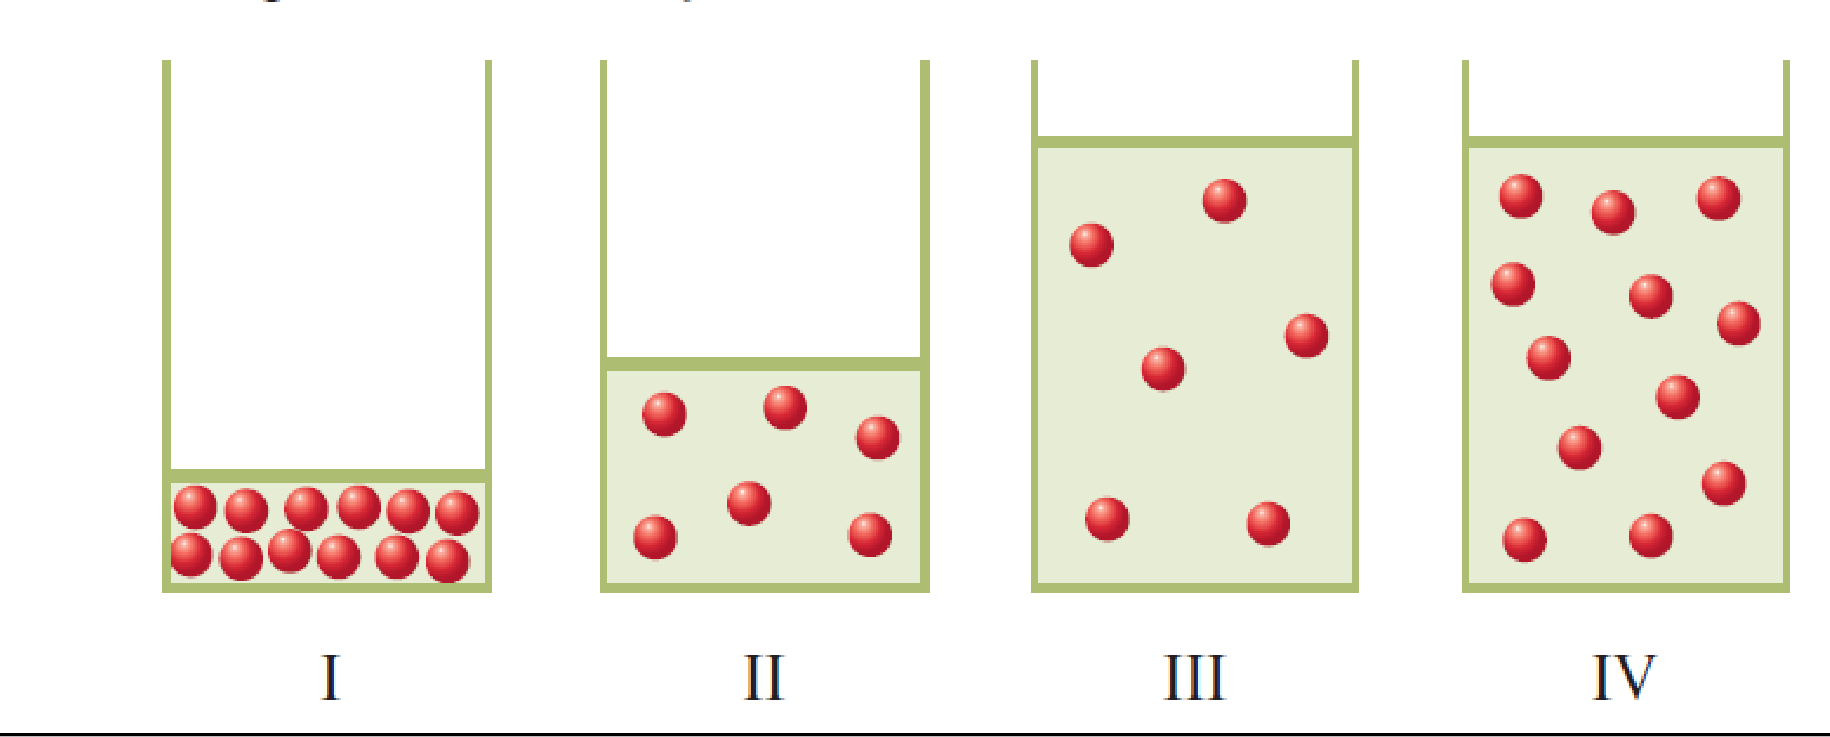 Chapter 8, Problem 8.71EP, The following diagrams show various amounts of the same solute (the red spheres) in varying amounts